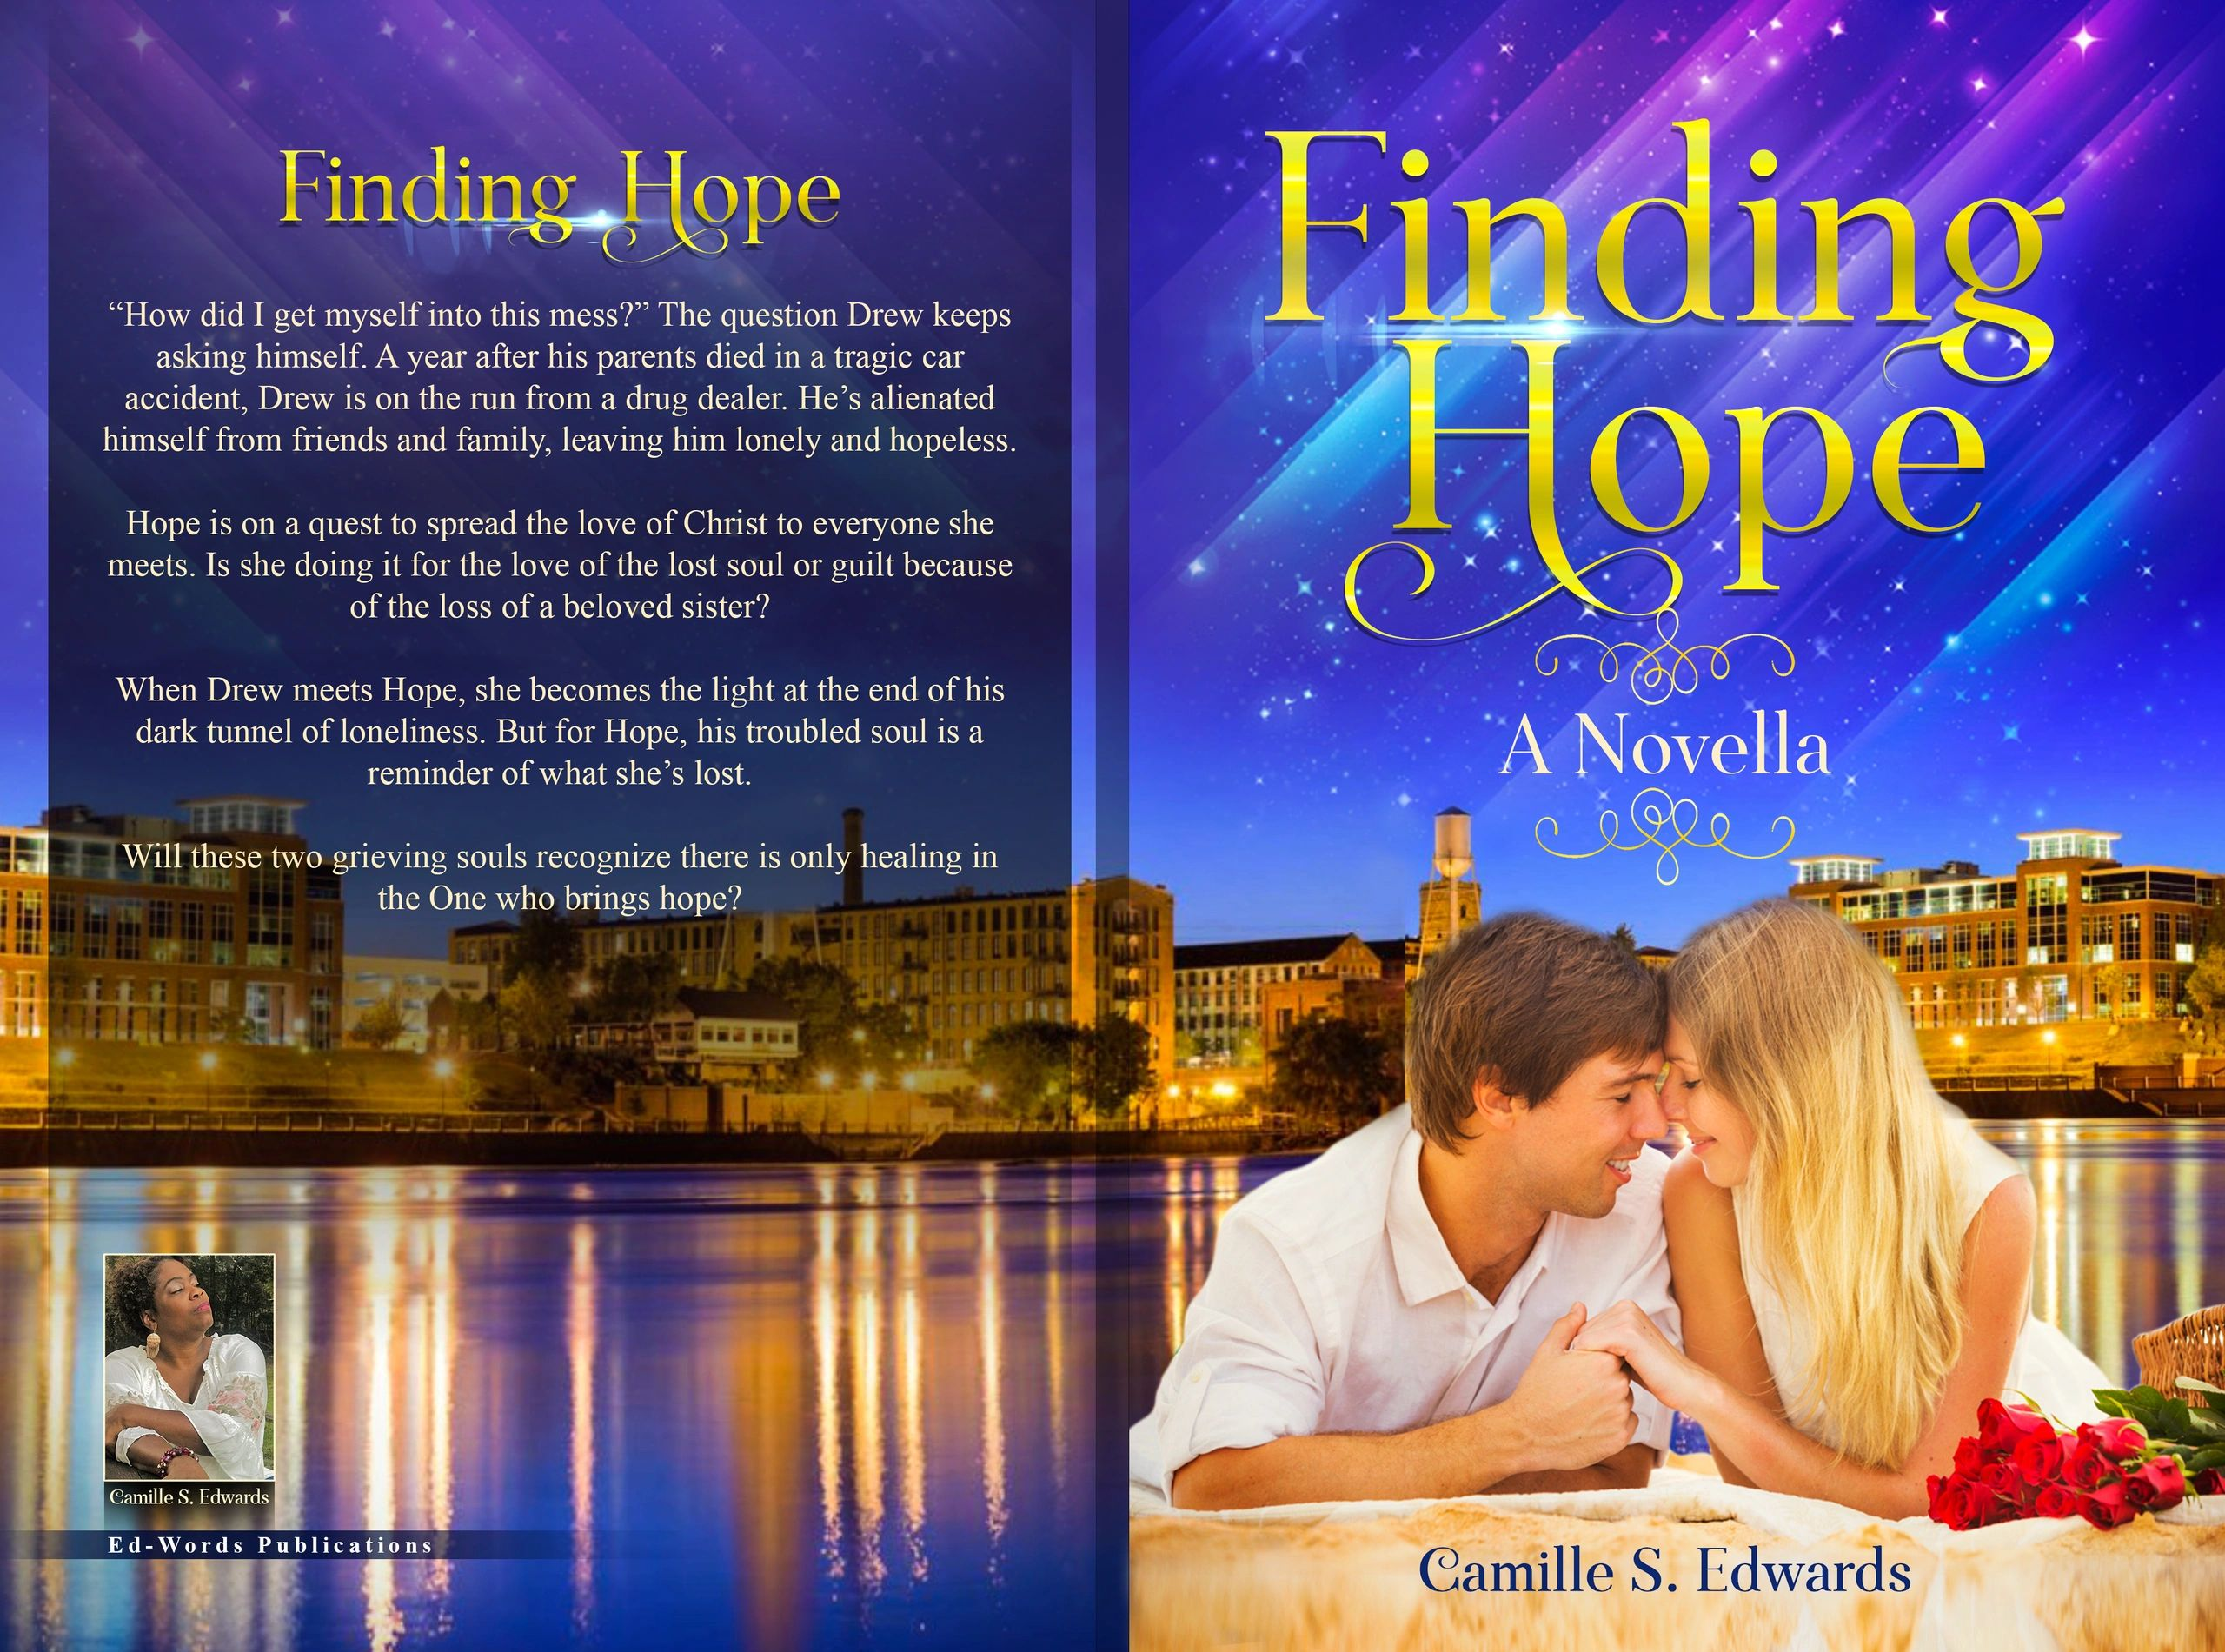 Finding Hope is Released